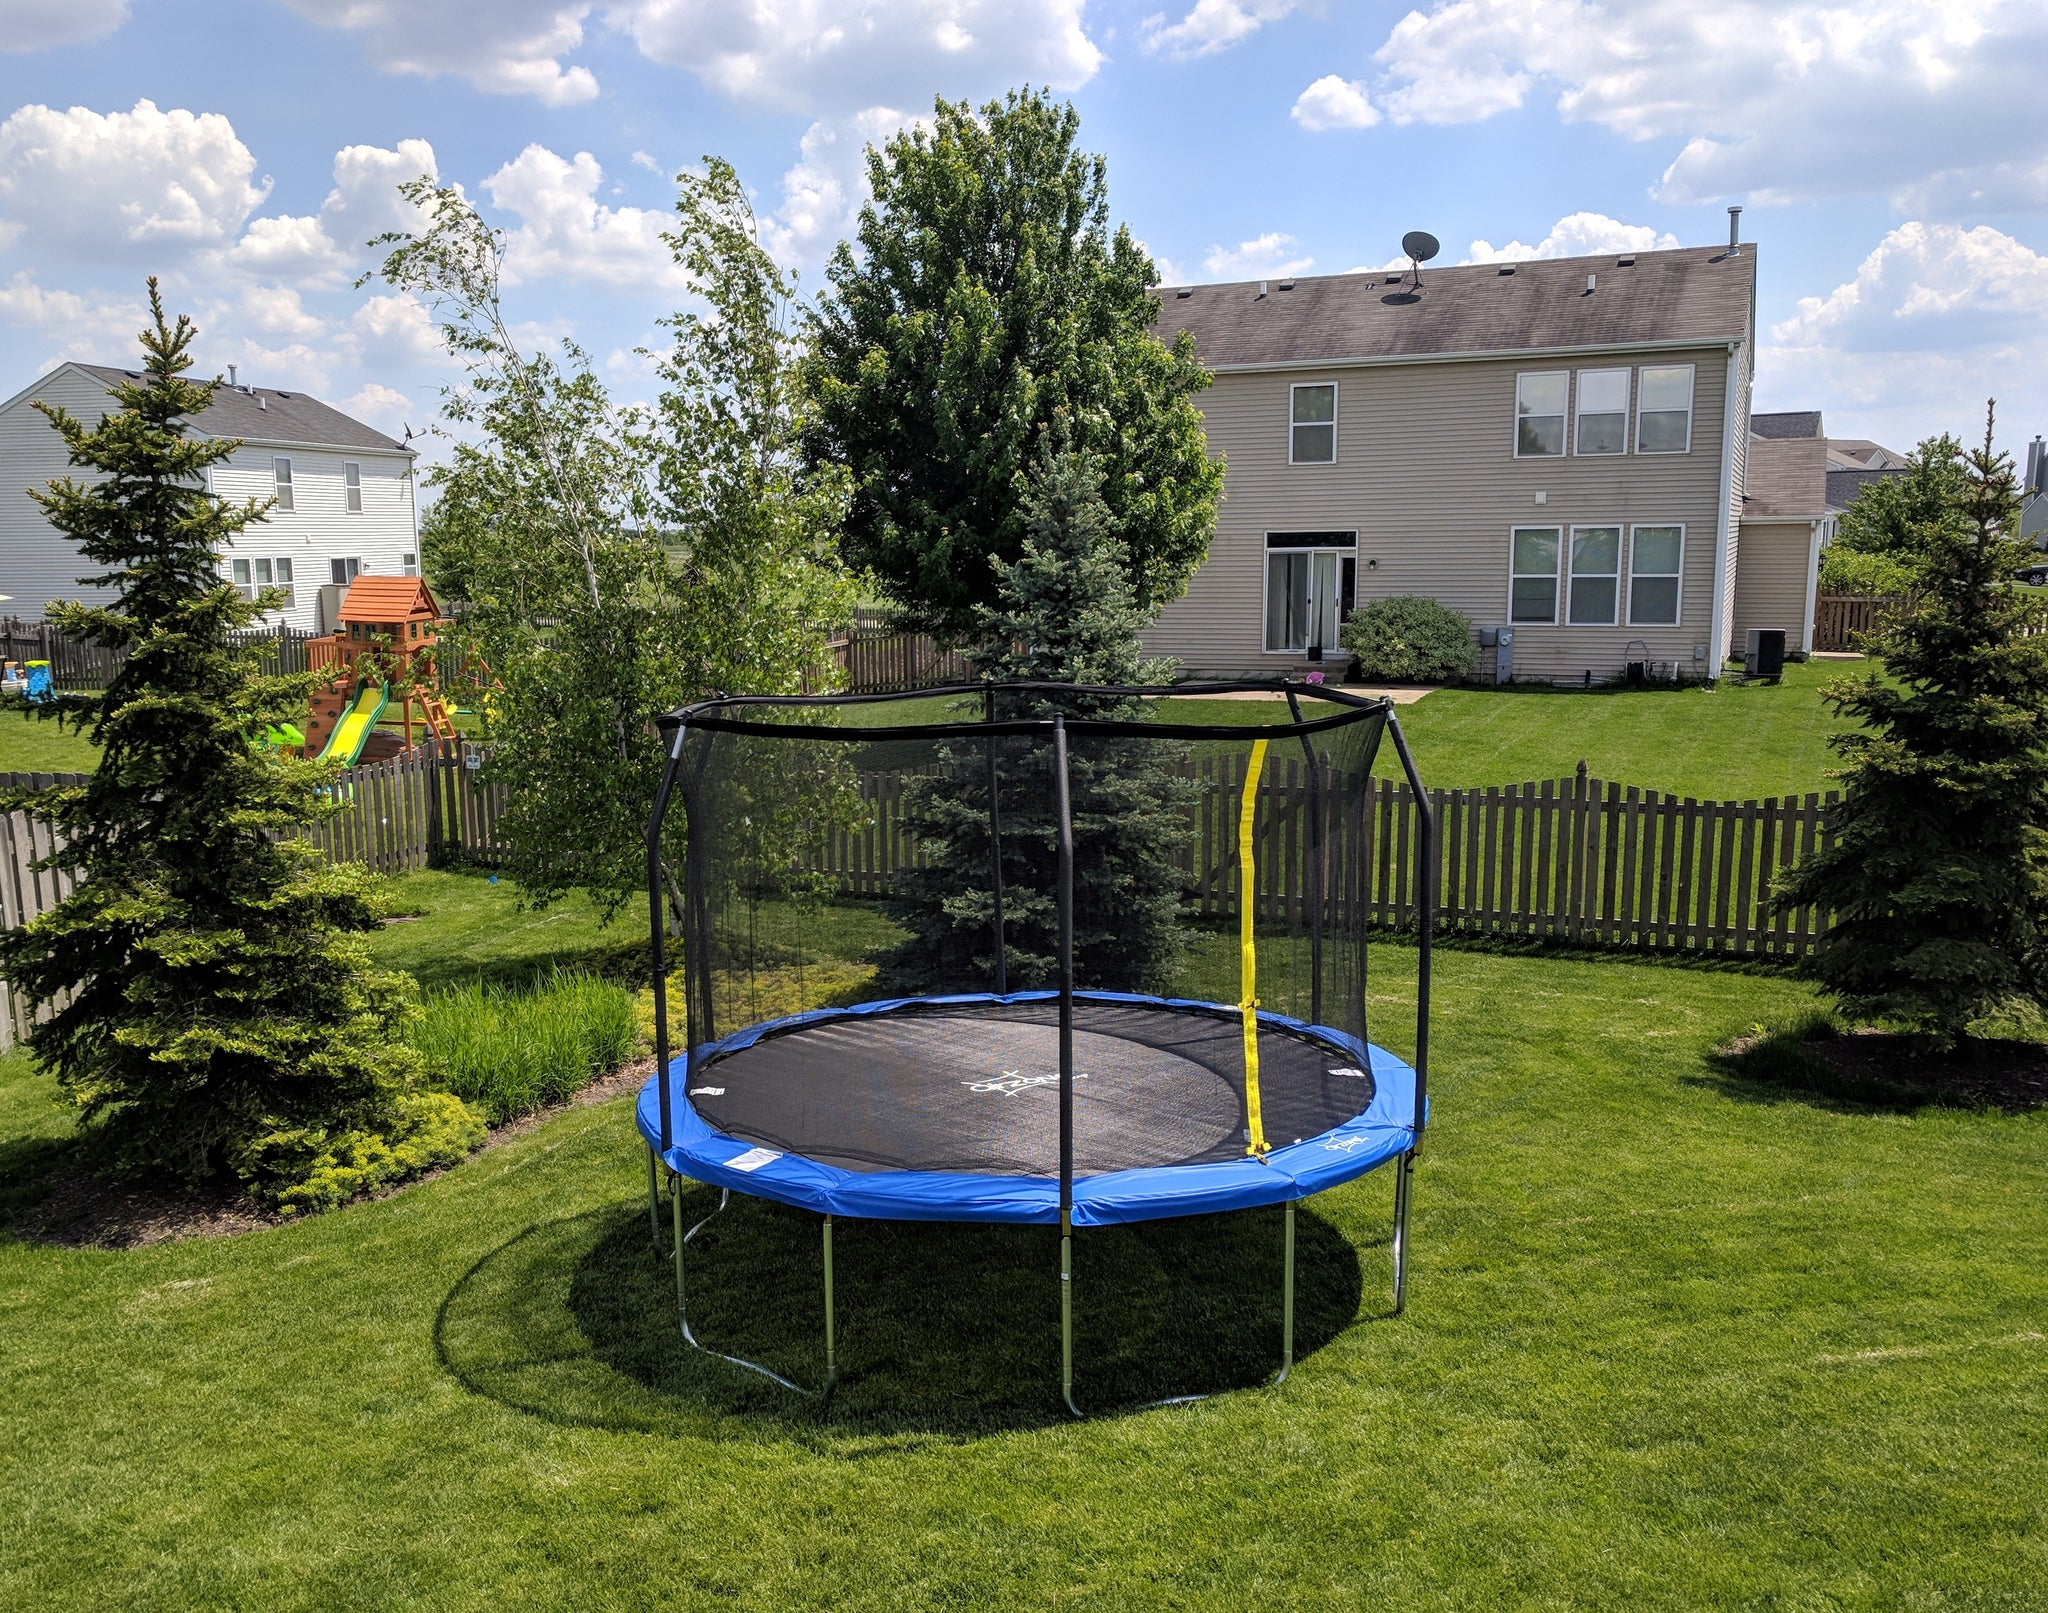 AirZone Jump 15' Backyard Trampoline – AirZone Direct